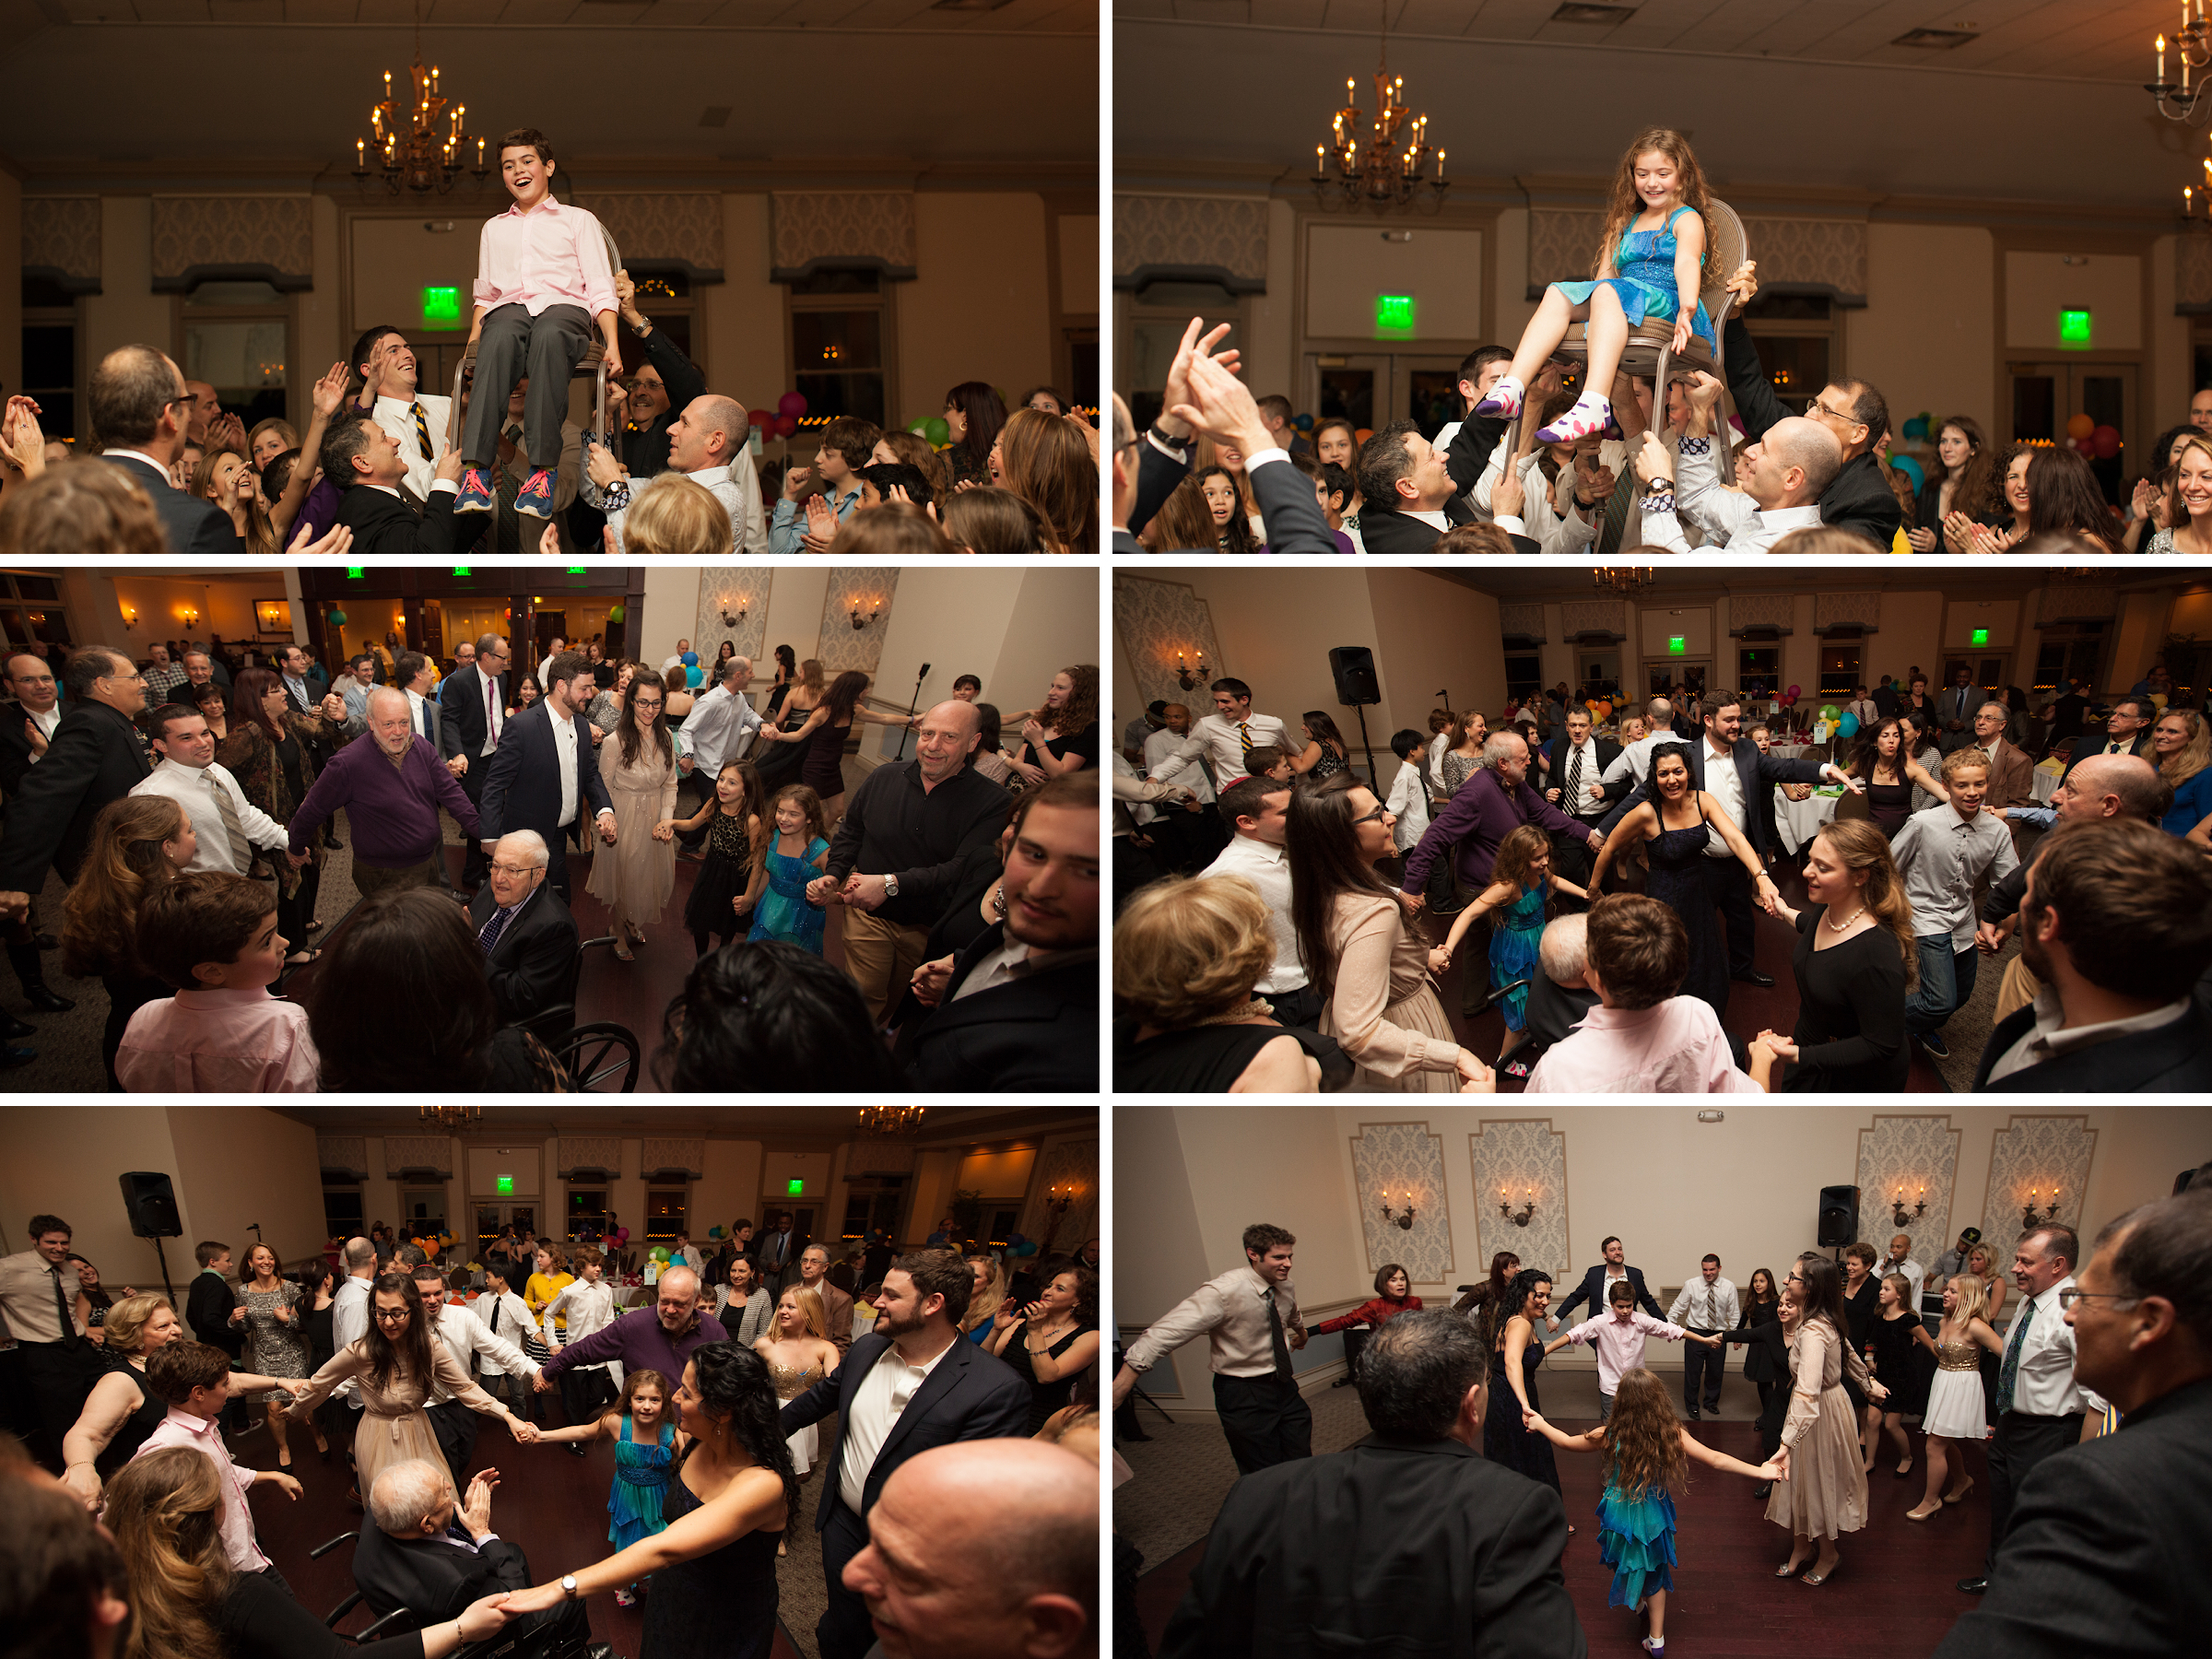 Zach_Bar_Mitzvah_Blog_11